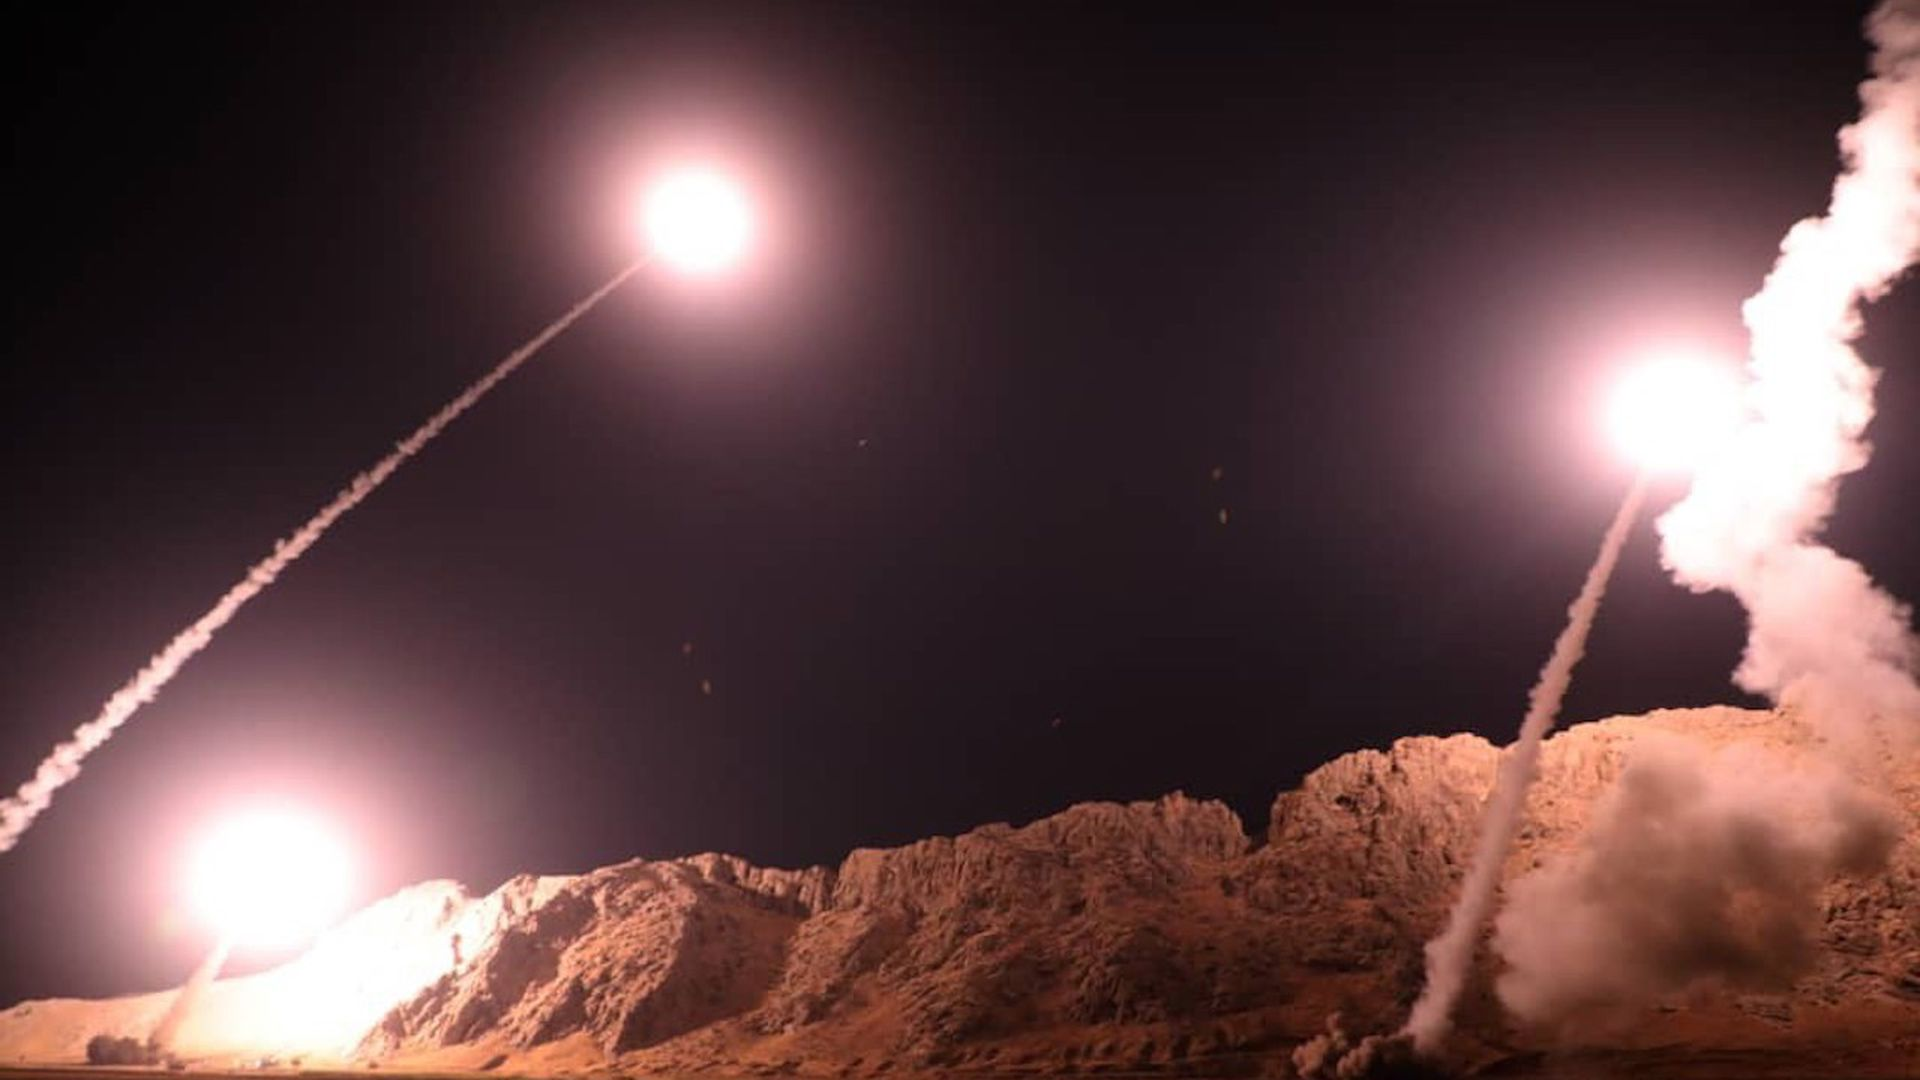 Zulfiqar and Qiam ballistic missiles, targeting Syria, are launched by Irans Revolutionary Guard in Kermanshah, Iran on October 01, 2018.